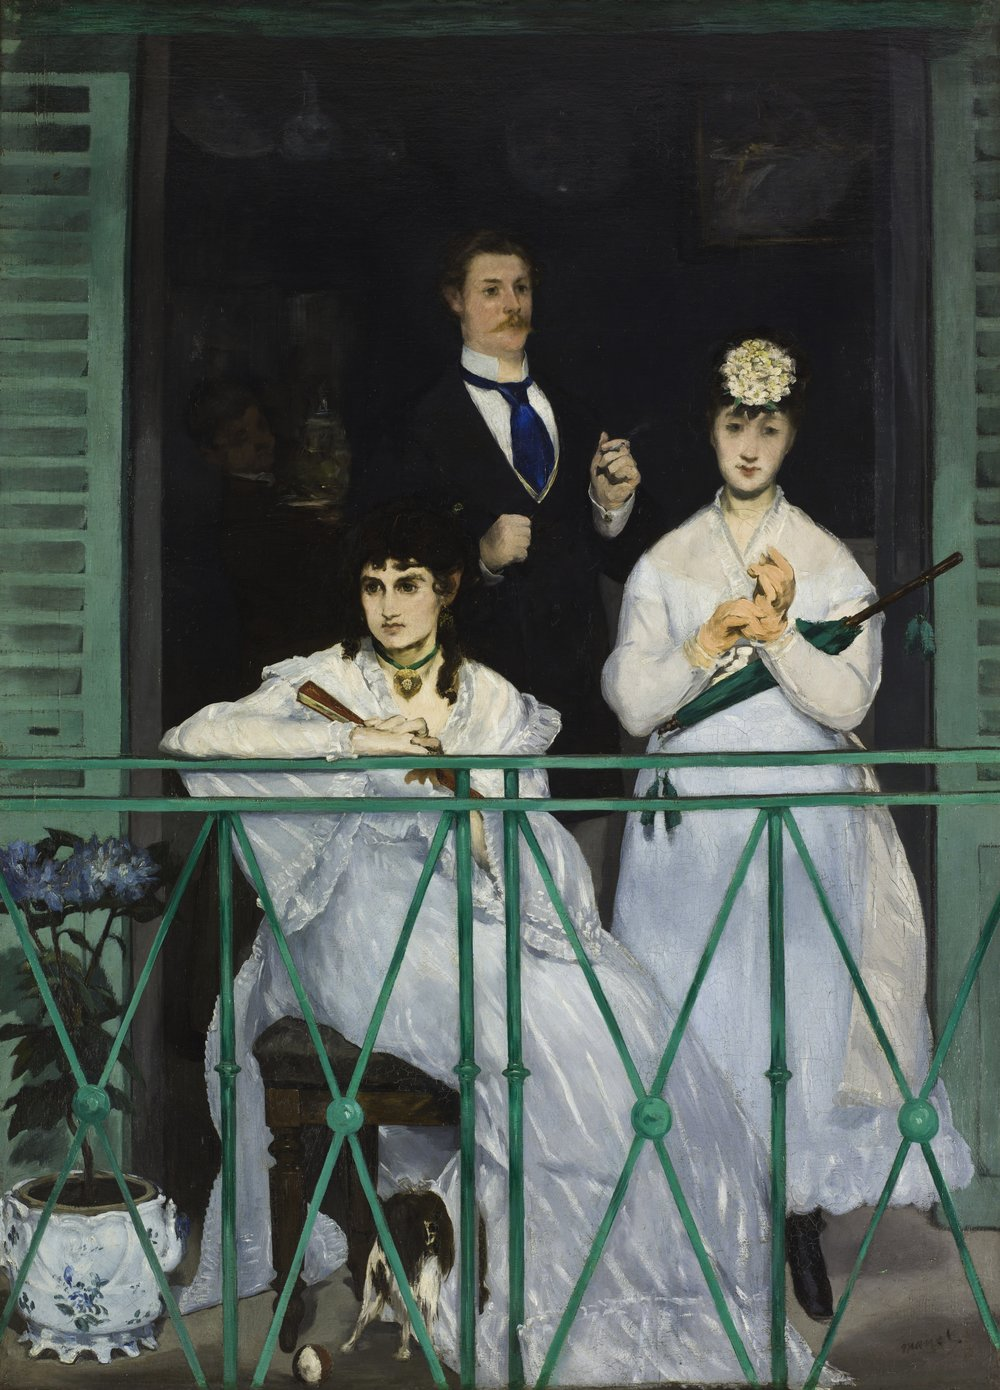 Édouard Manet, The Balcony (Le balcon), 1868